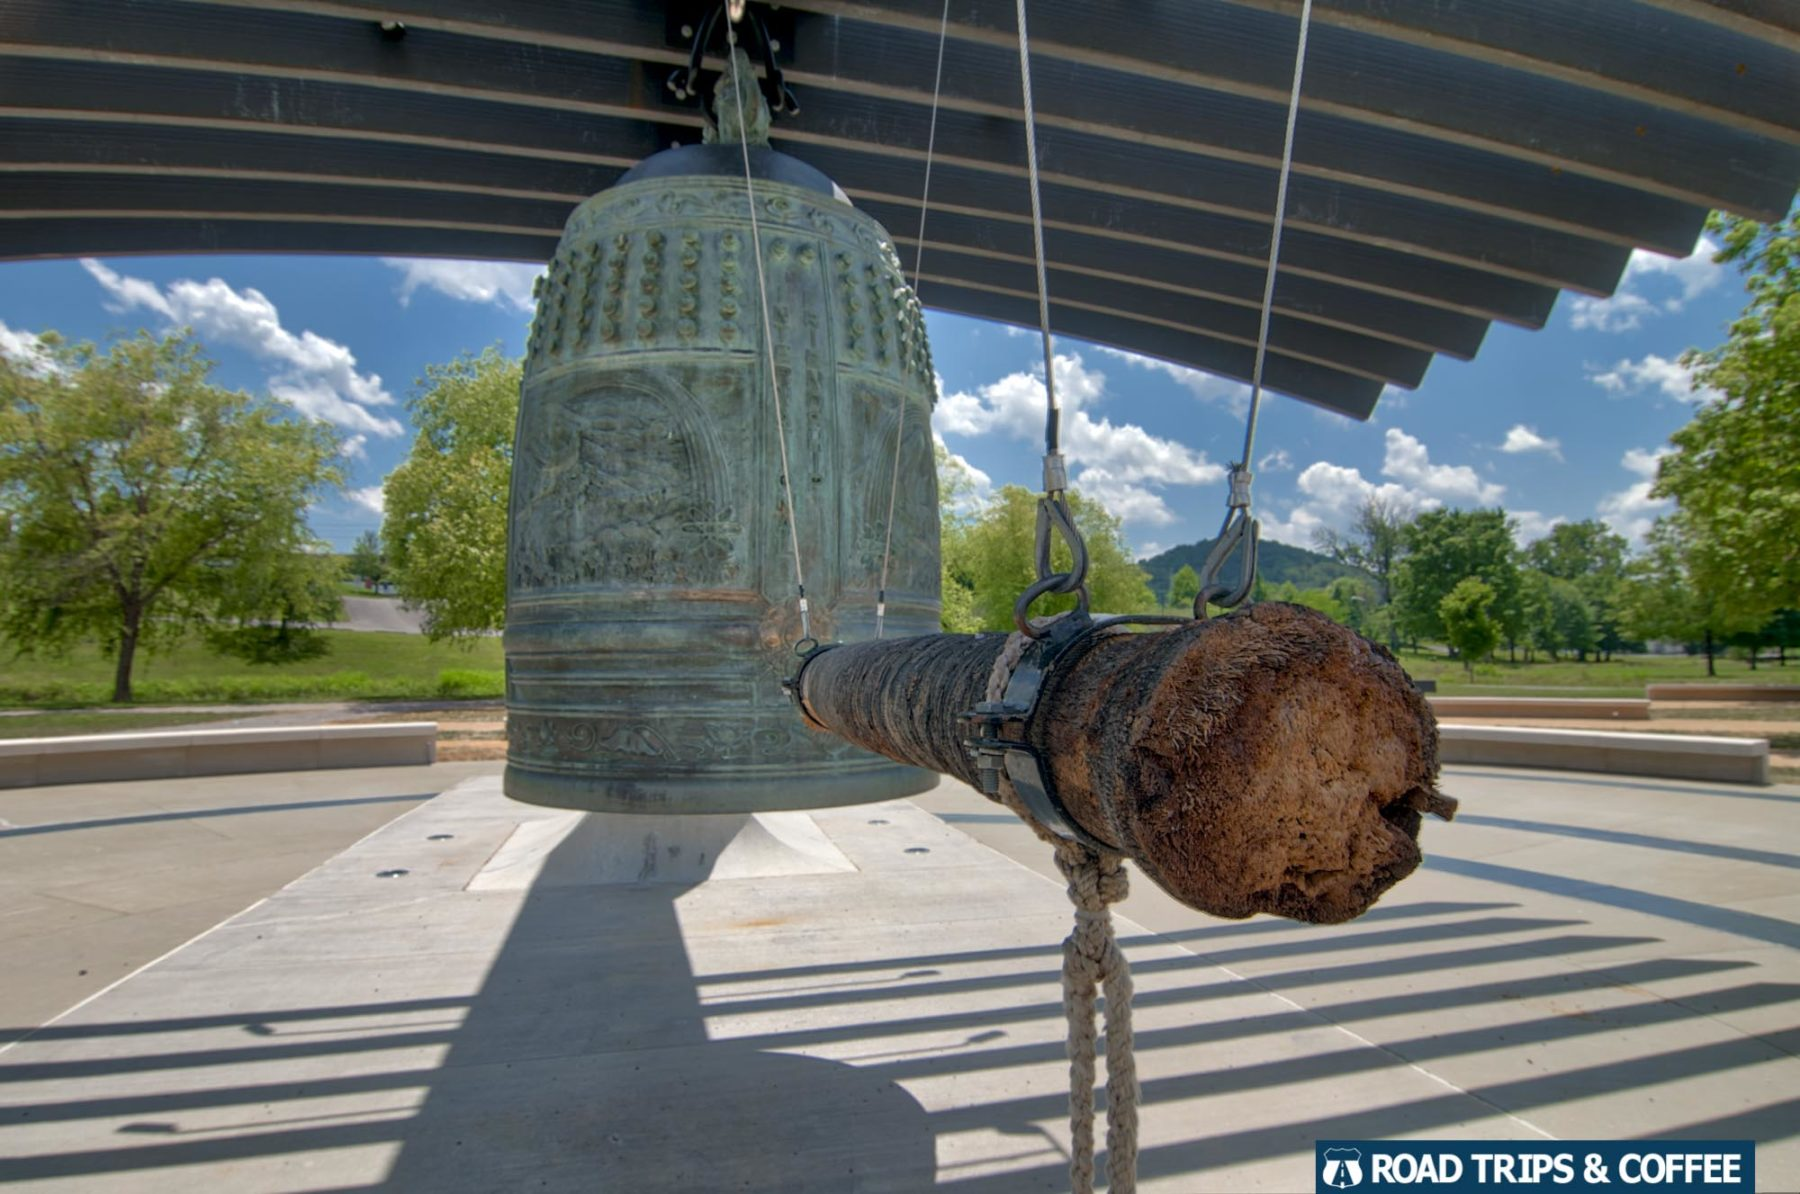 The bronze International Friendship Bell hanging from a beautiful wooden support in Oak Ridge, Tennessee